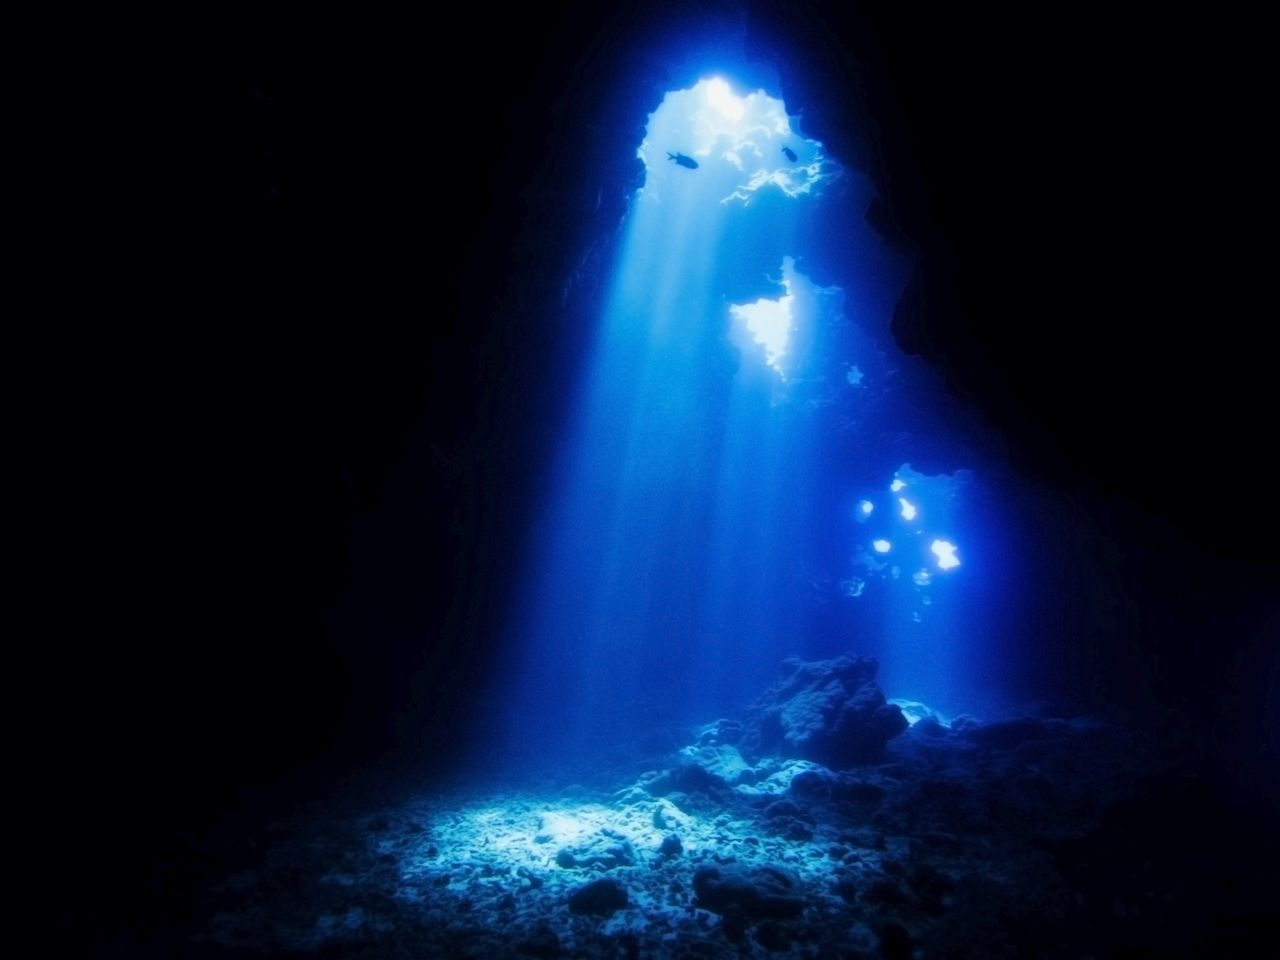 Cathedrals Dive Site Hawaii with Beams of Sunlight Entering Lava, Hawaii's Islands